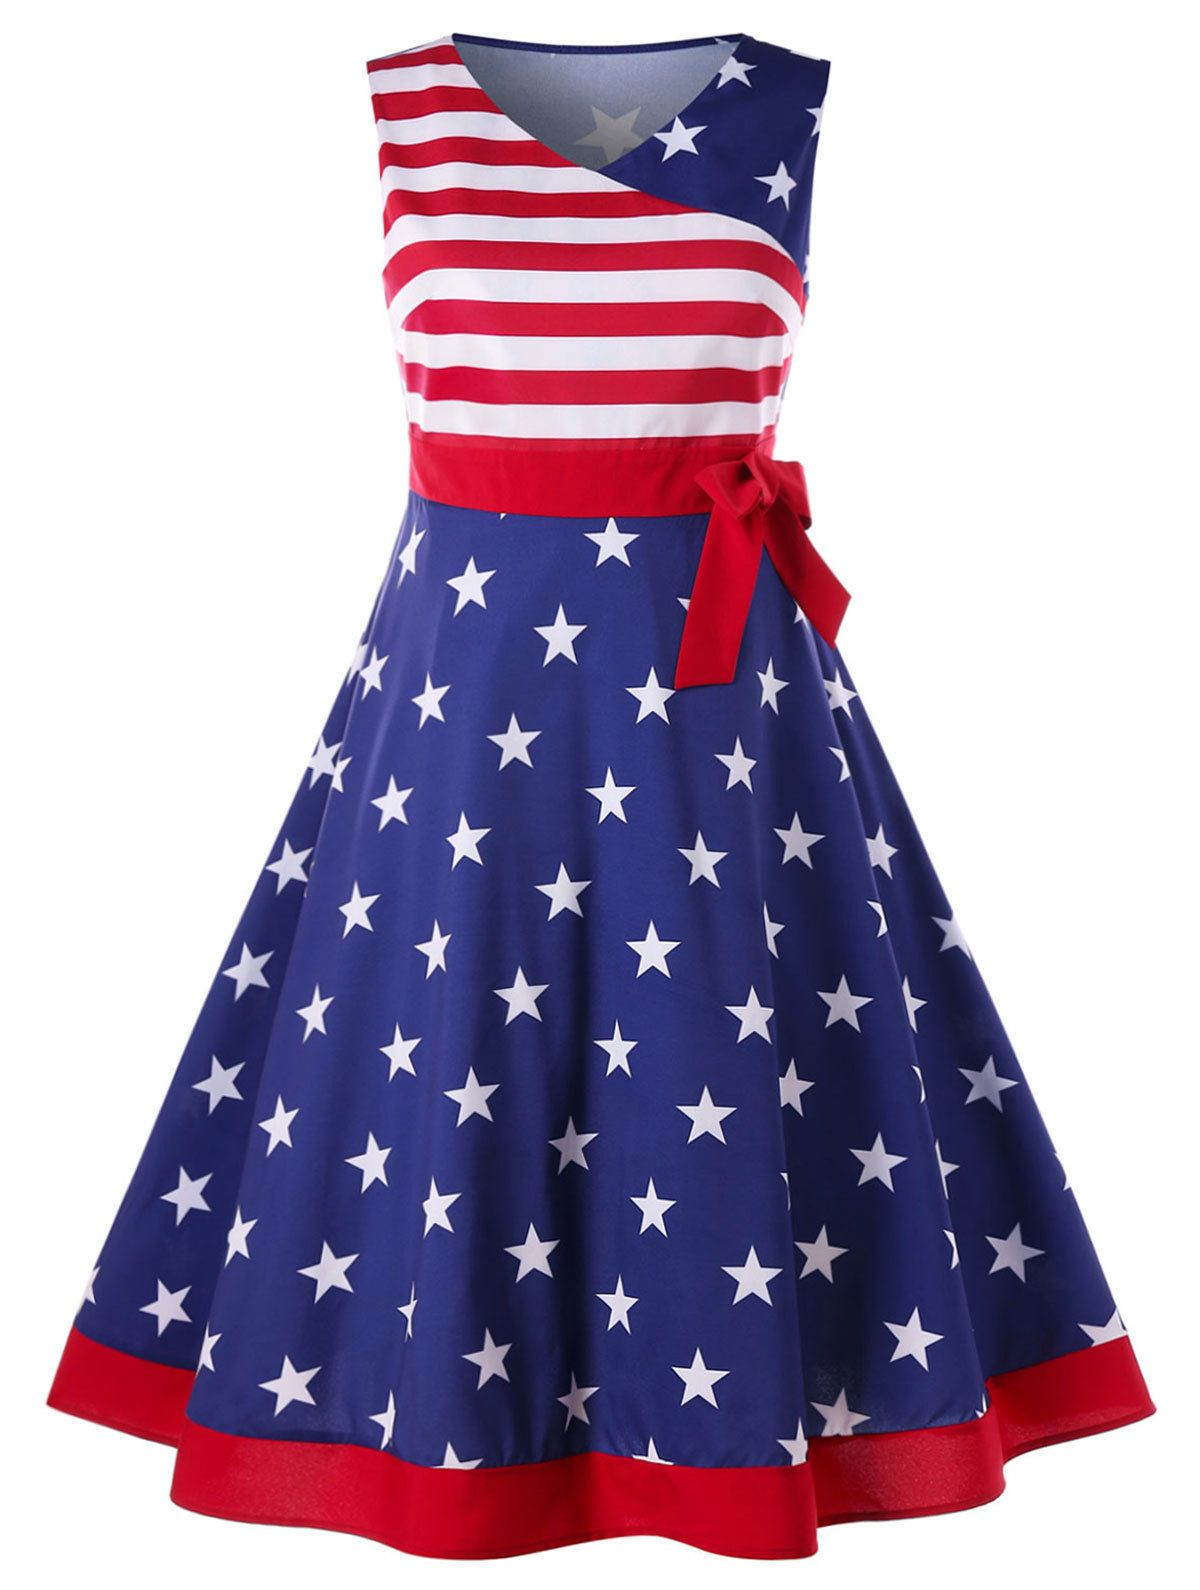 788c8a7fe05 NEW Vintage Women Plus Size American Flag Dress V Neck Party Patriotic  Dress